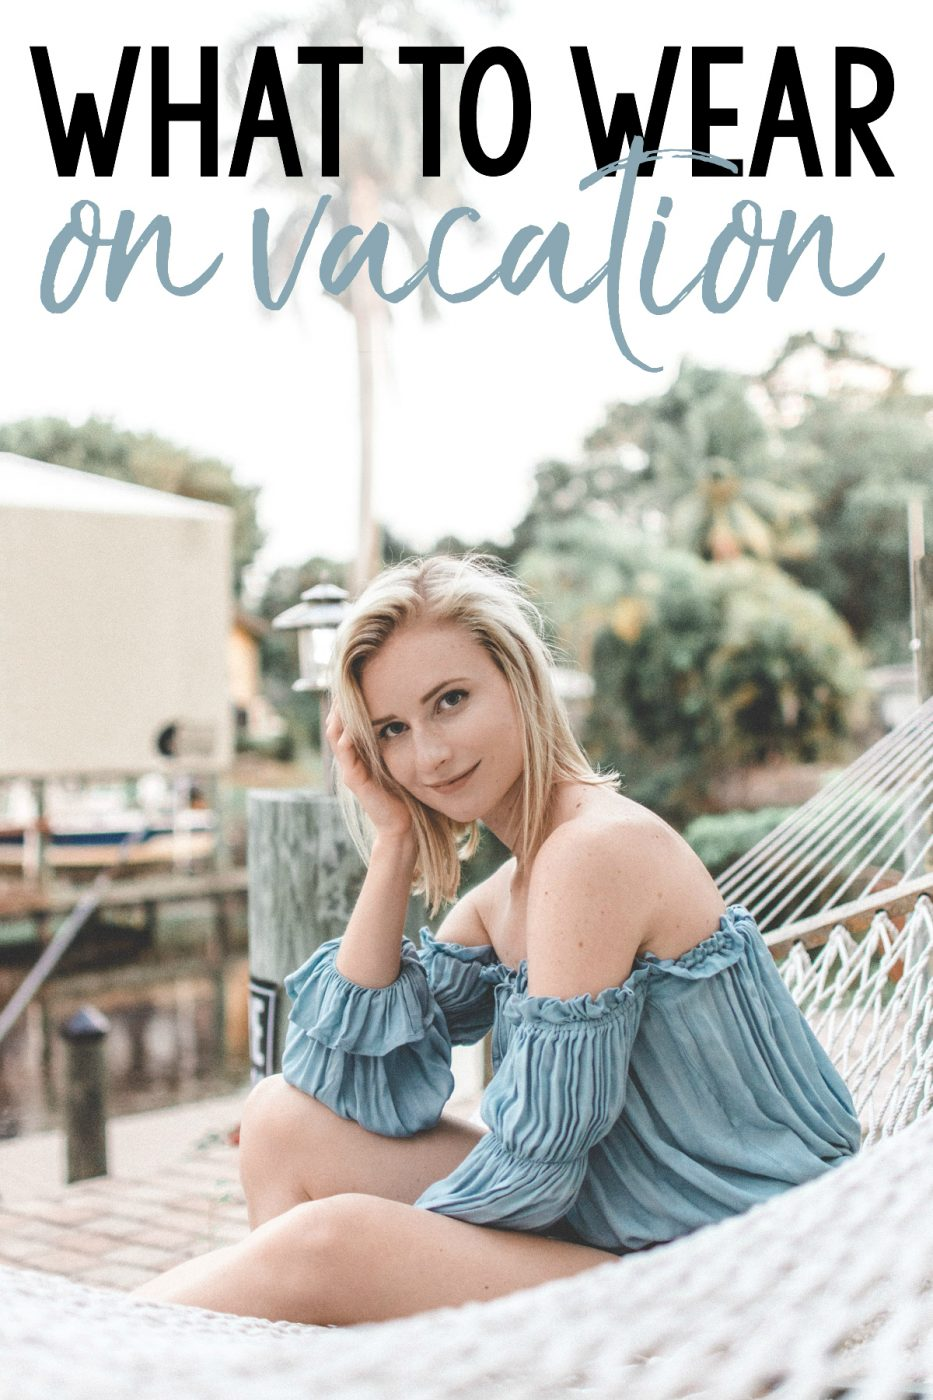 What to wear on different types of vacations by Jenny Bess of Sweet Teal